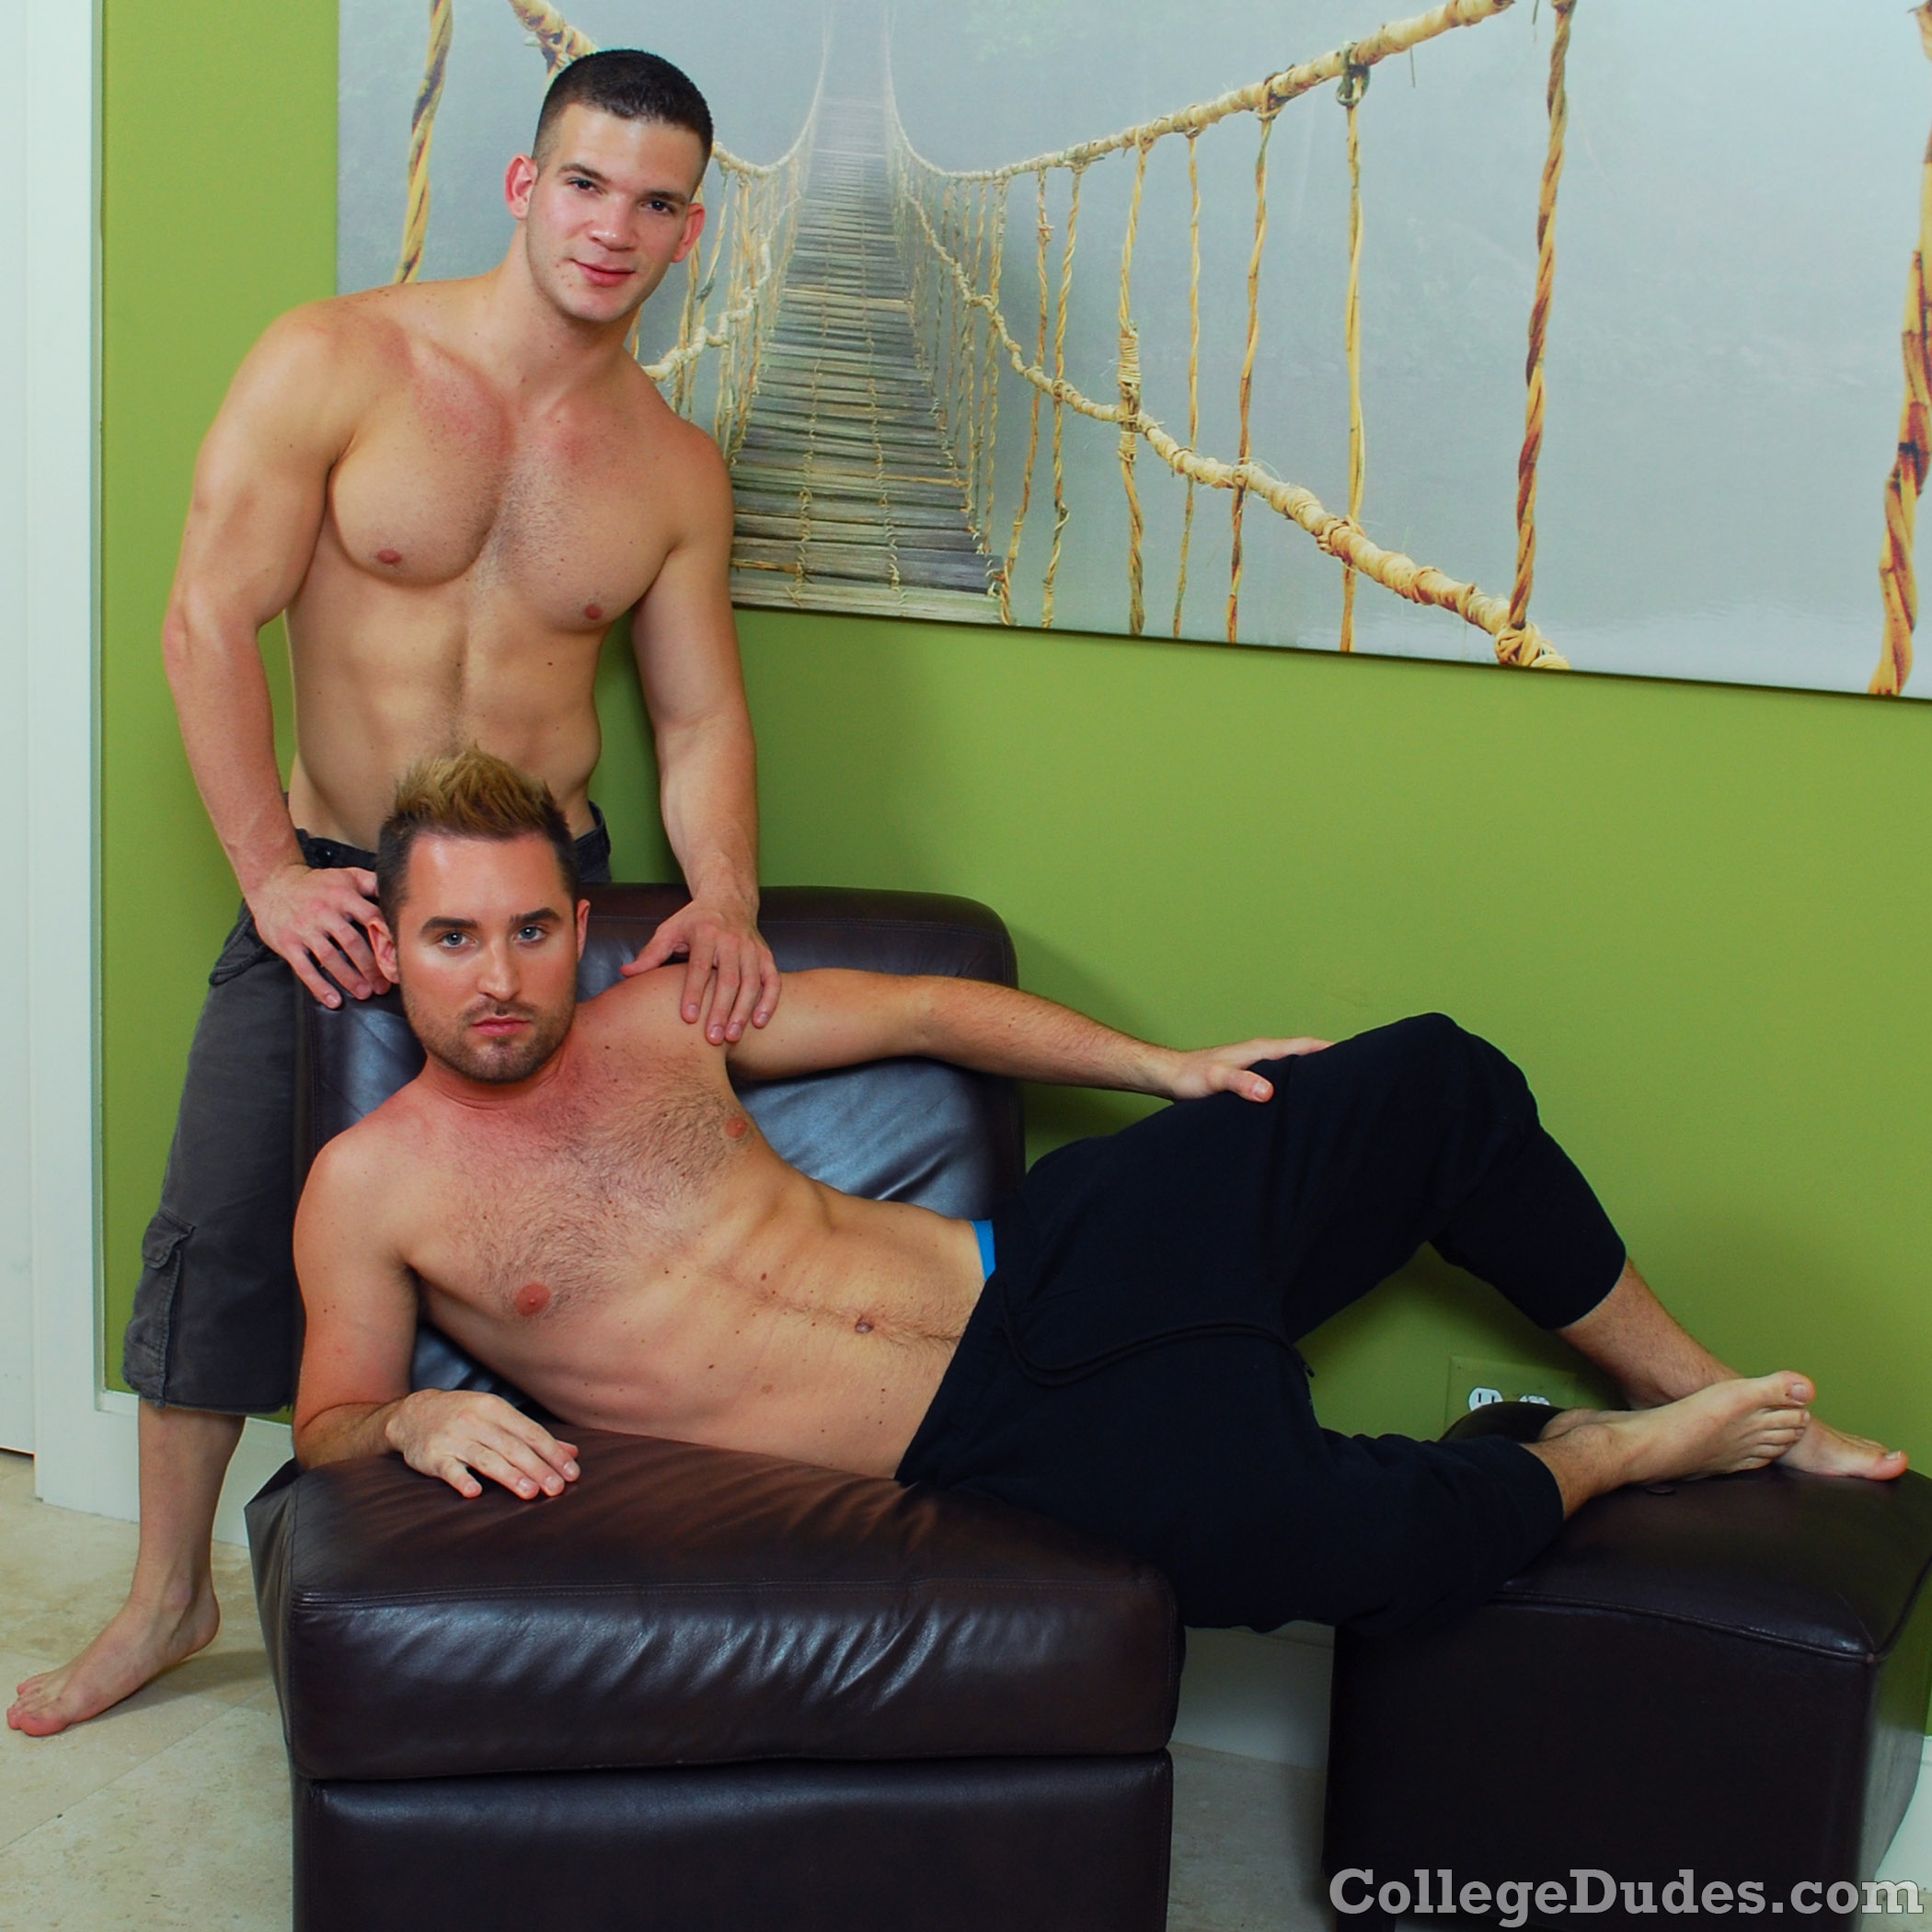 CollegeDudes Angel Rock Fucks Teagan Scott Big Cocks 04 Huge Cock College Guys Fucking Hard